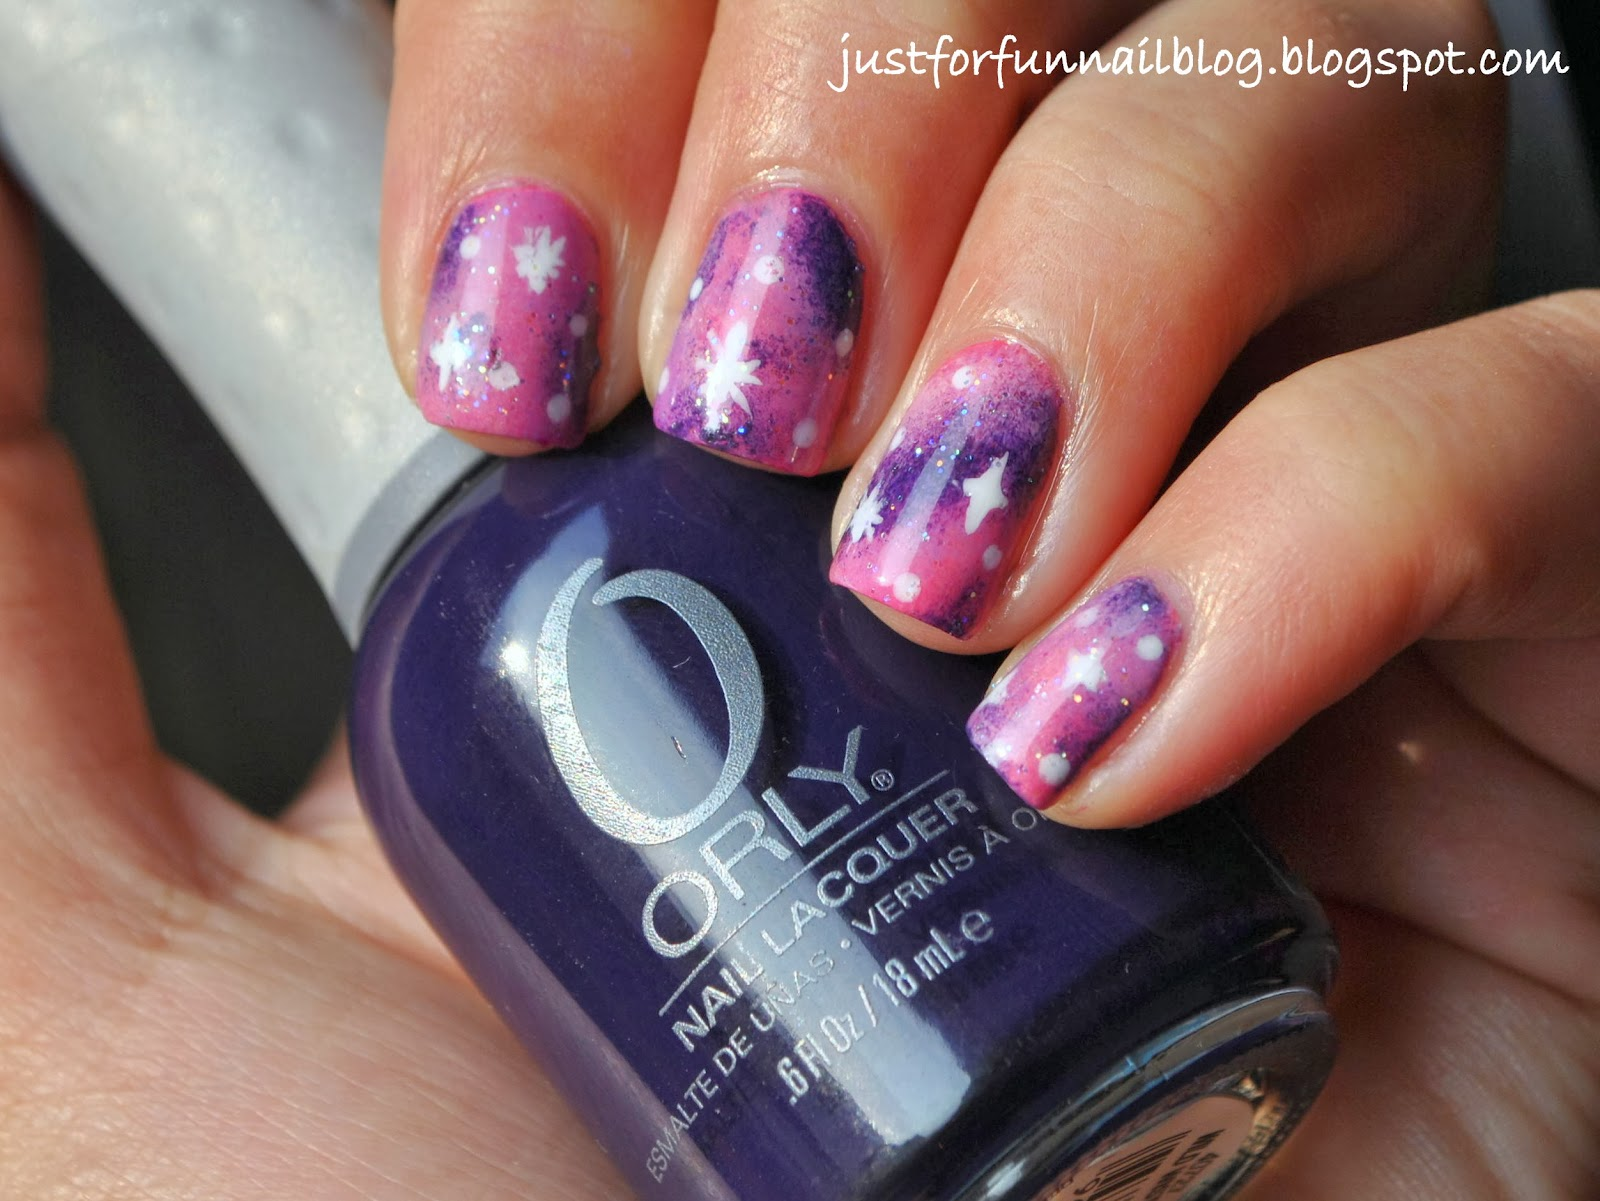 Week of Love V'day Nail Art Challenge - Day 5 - Freestyle: Pink Galaxy Nails